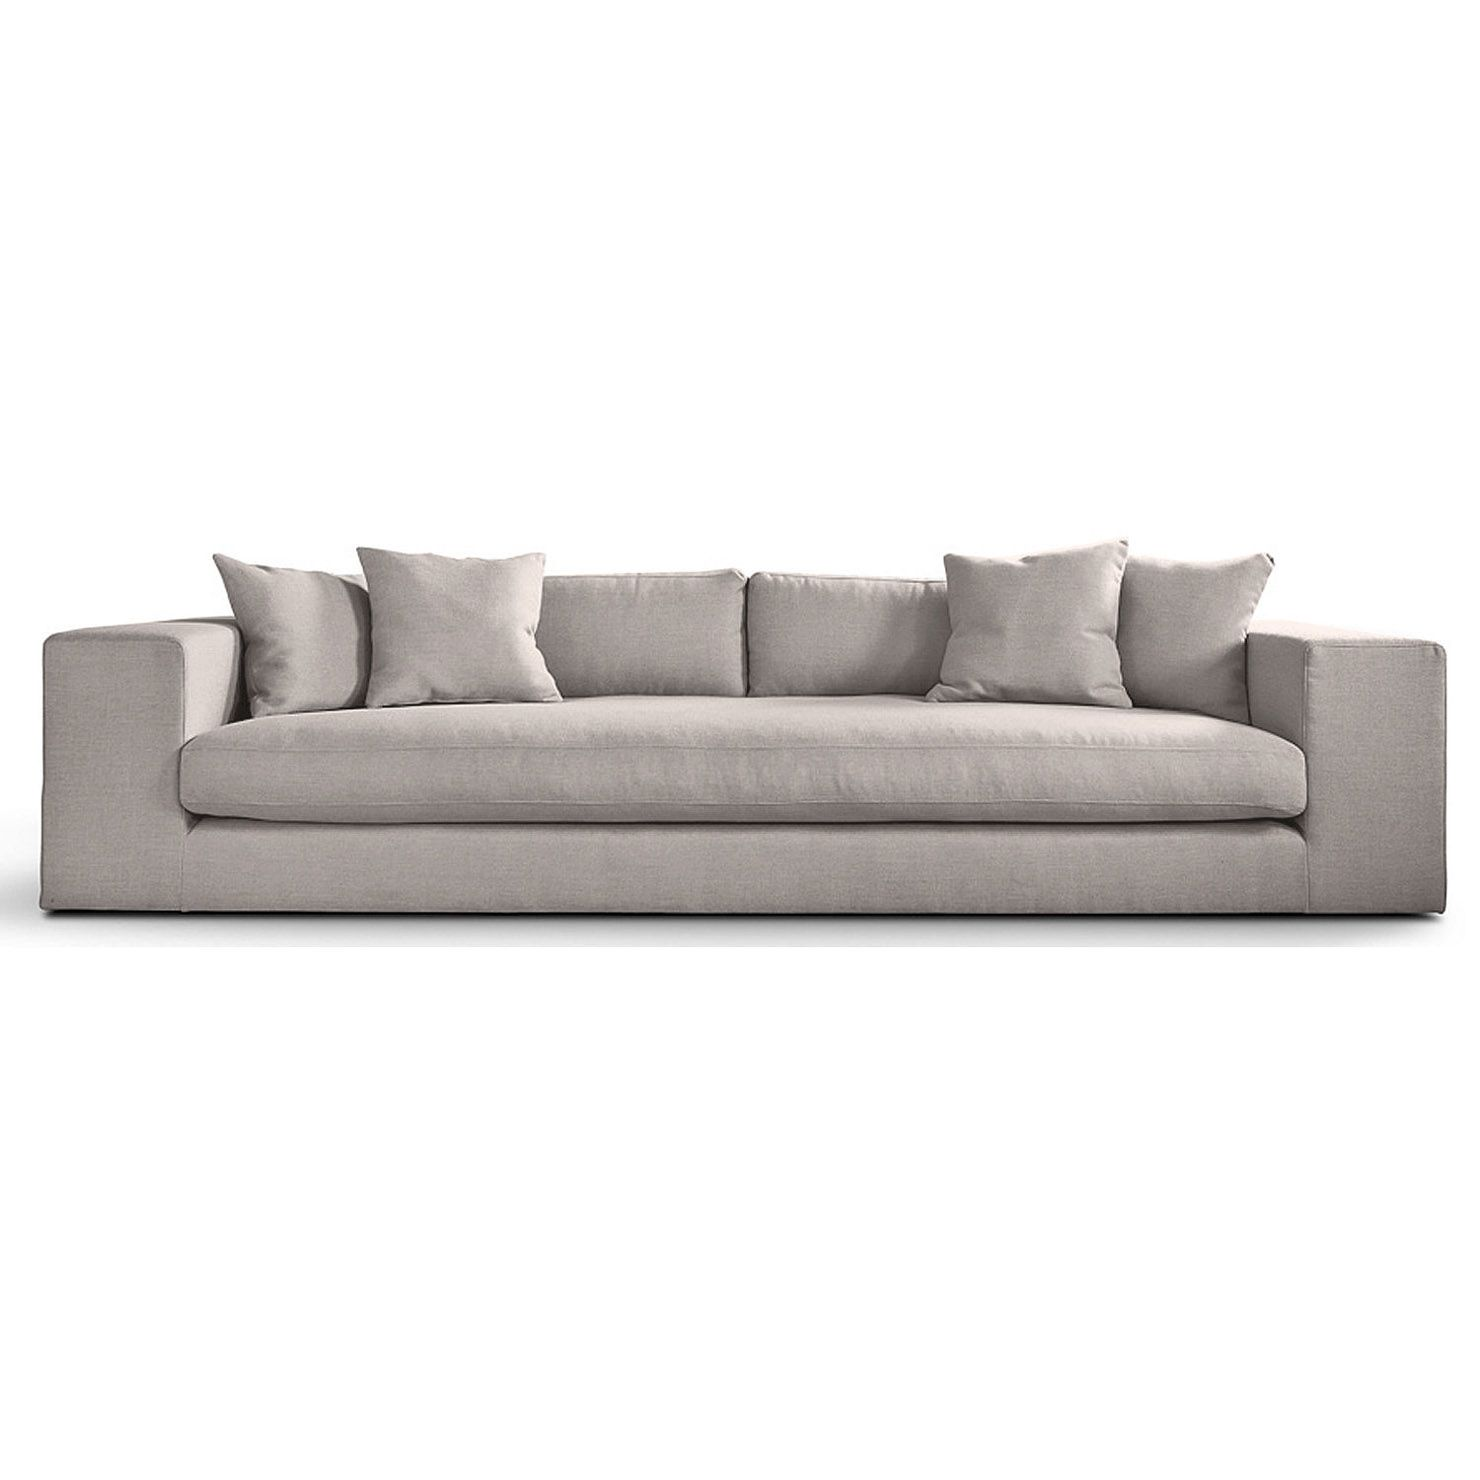 Barlow White Leather Sofa And Loveseat Set Barlow Fabric 4 Seater Sofa Dove Achica Sofa In 2019 Couch